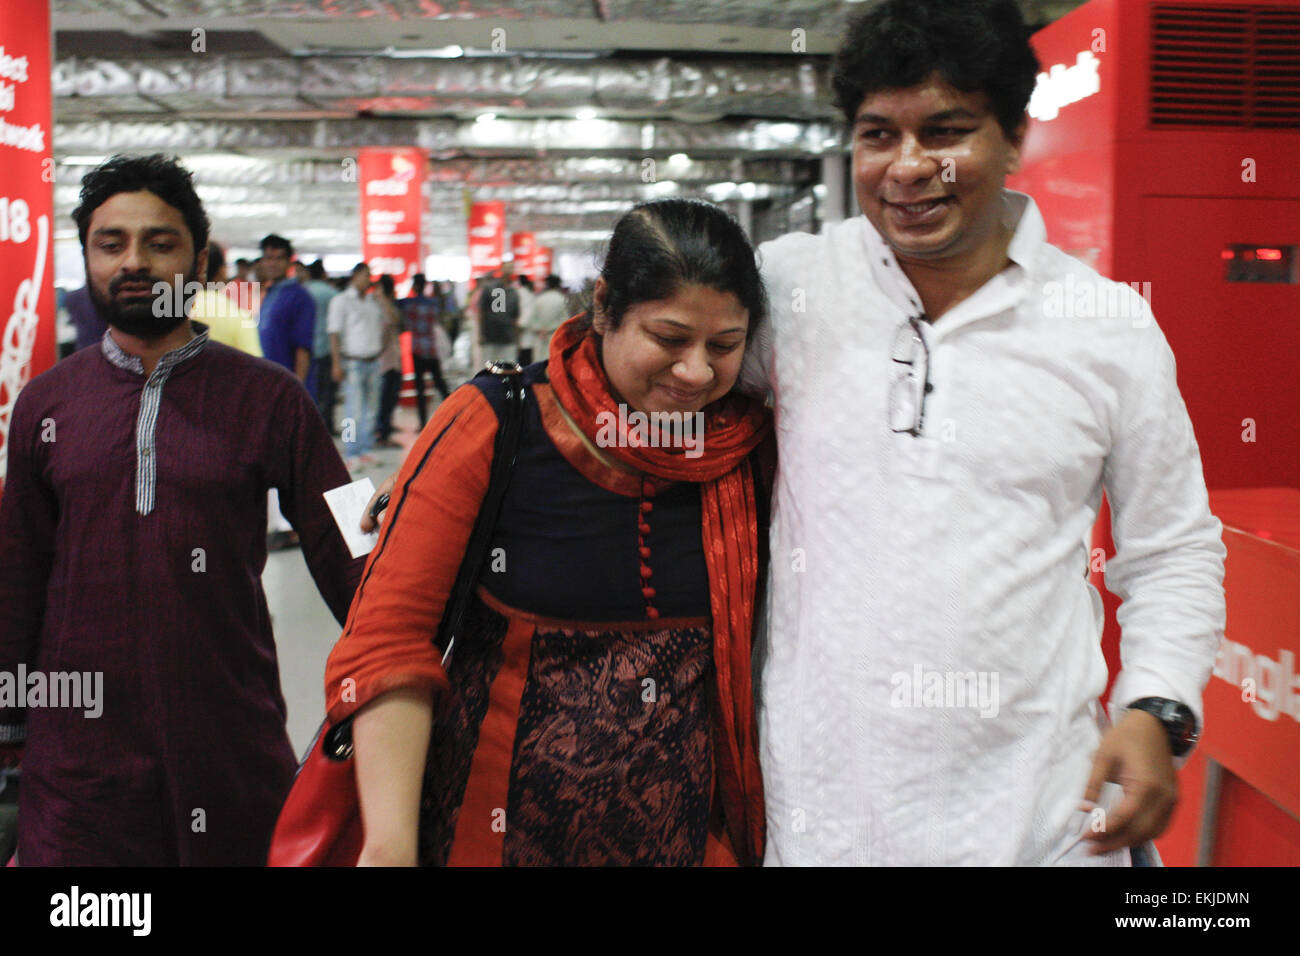 Dhaka, Bangladesh. 10th Apr, 2015. Bangladeshi woman Elora Zahan (middle) along with her two child were returned - Stock Image